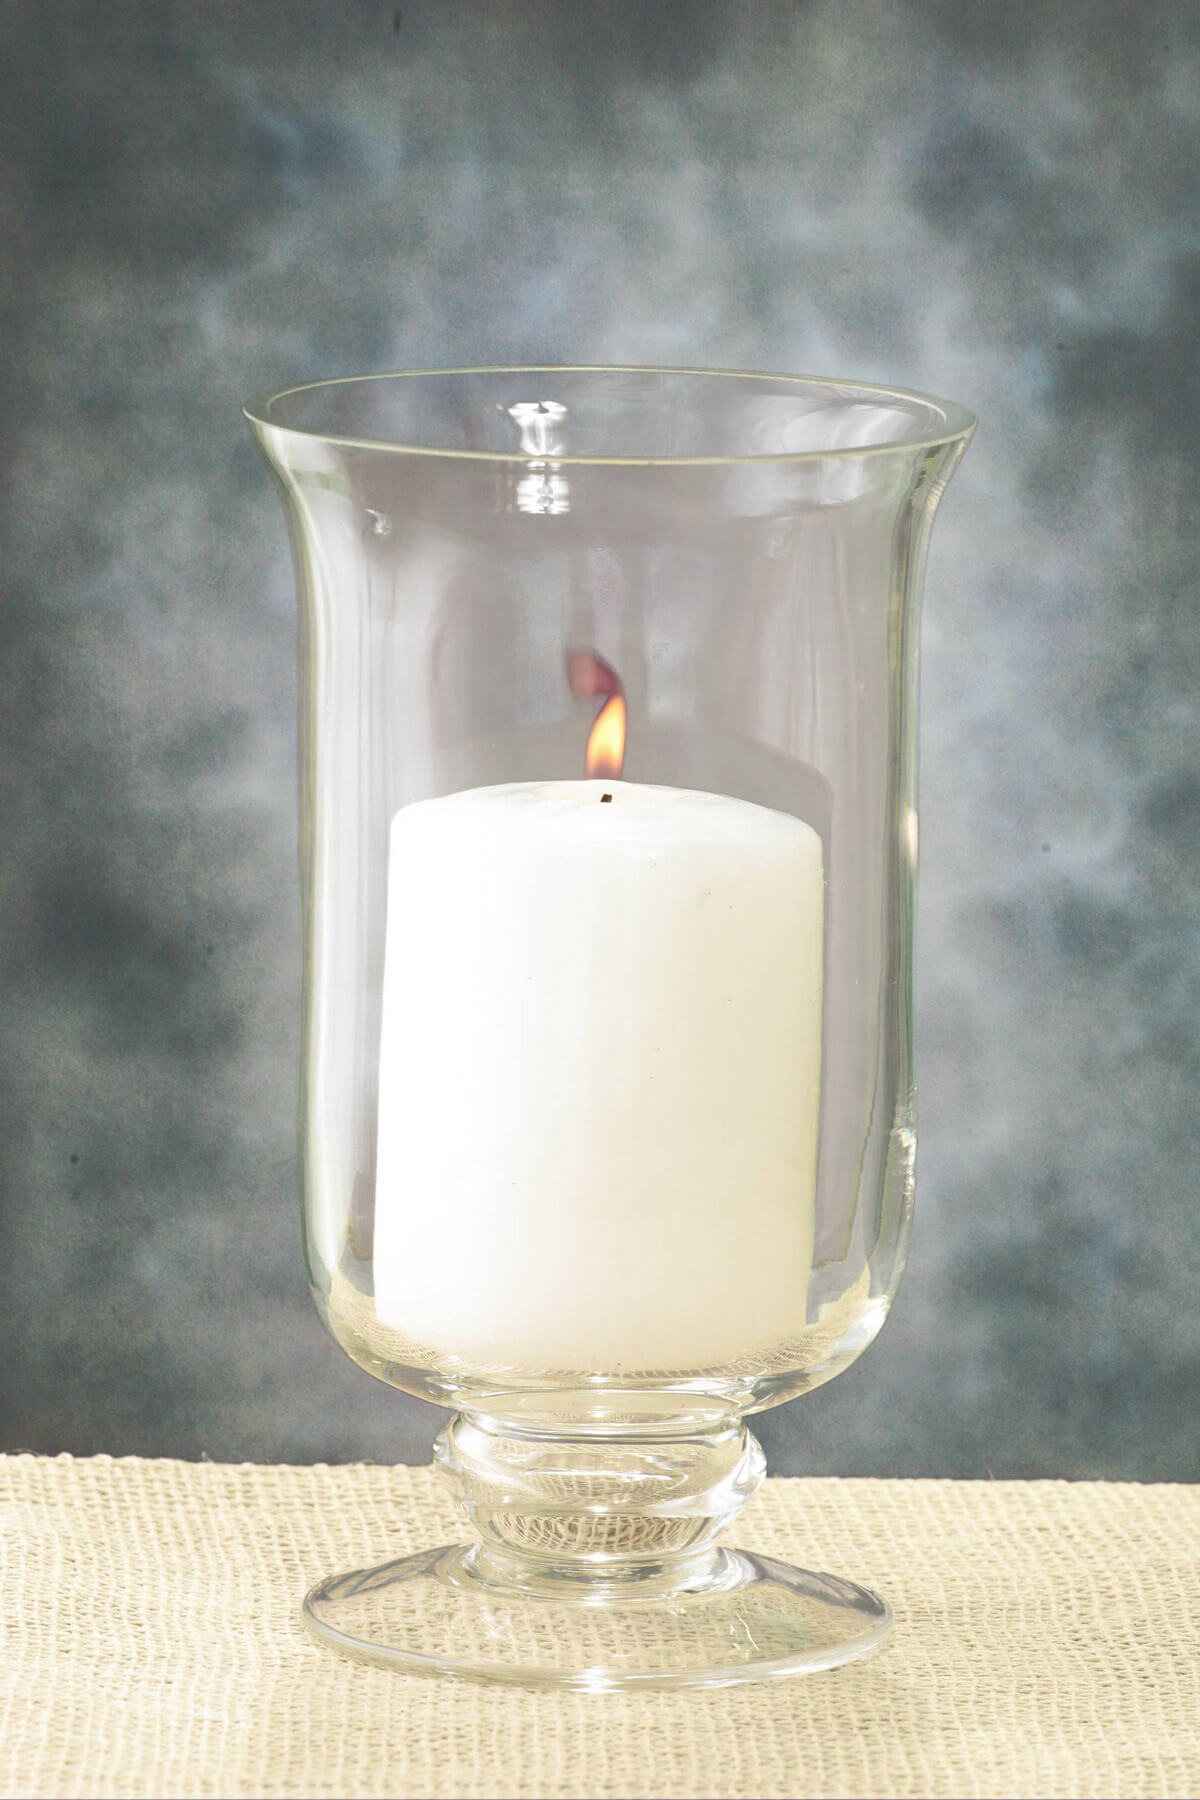 8in Hurricane Vase Amp Candle Holder